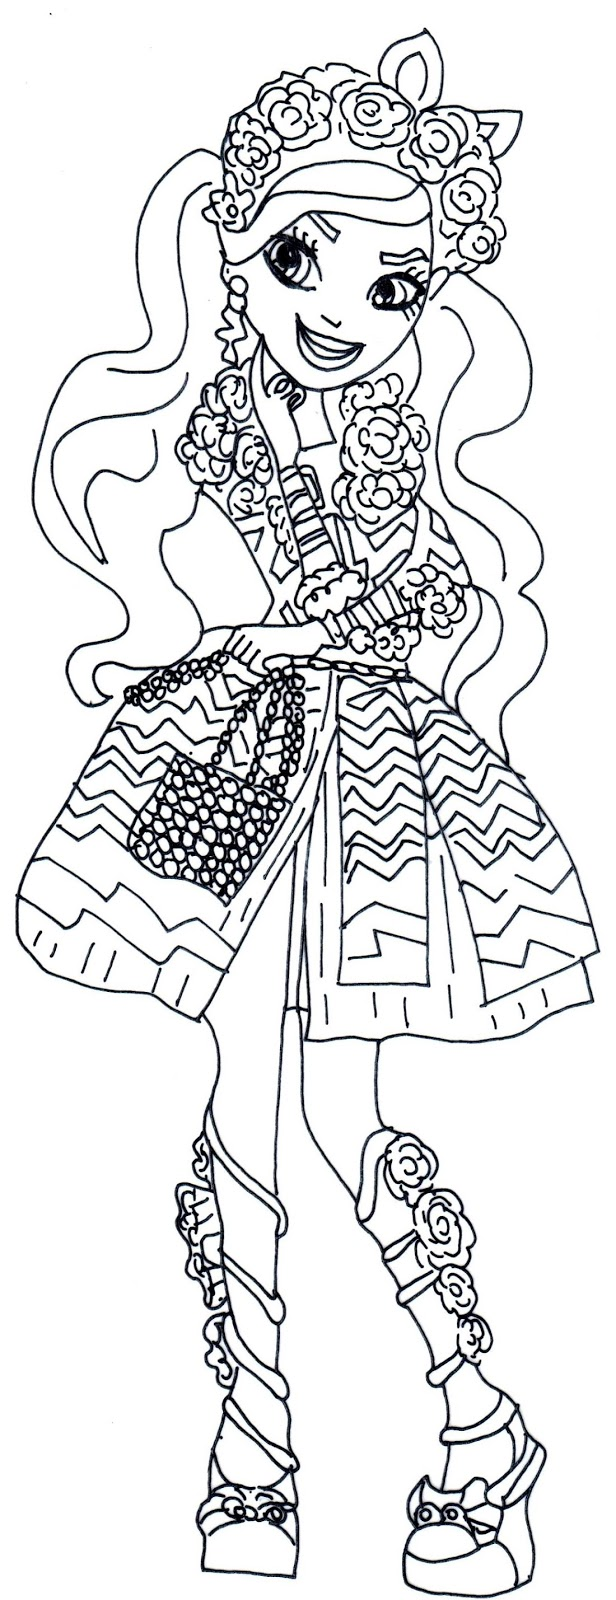 Free Printable Ever After High Coloring Pages: Kitty